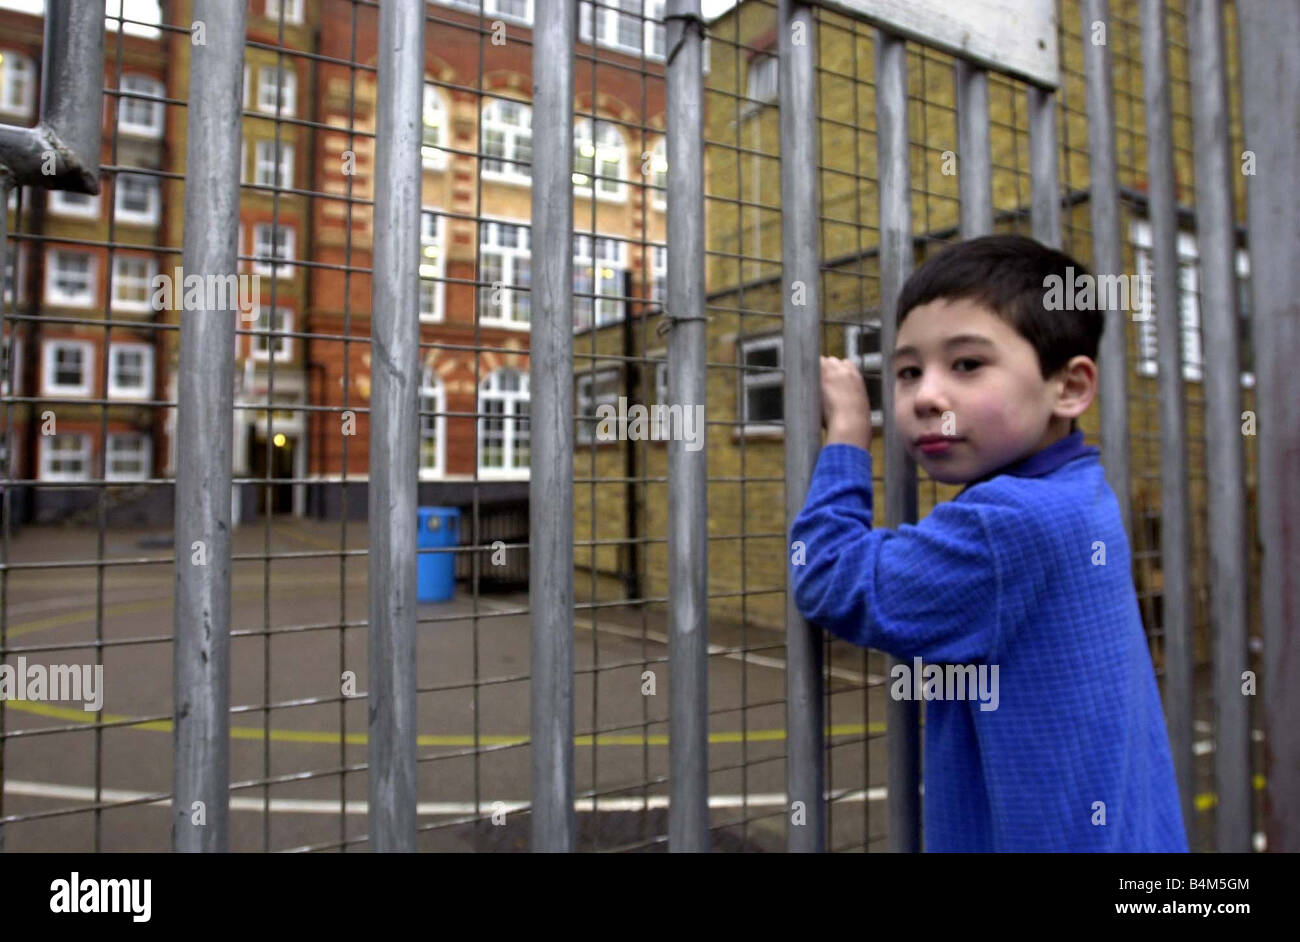 Schools closed today due to teachers demonstrating in london Bili Iwai aged 8 outside the Addison Road primary school - Stock Image